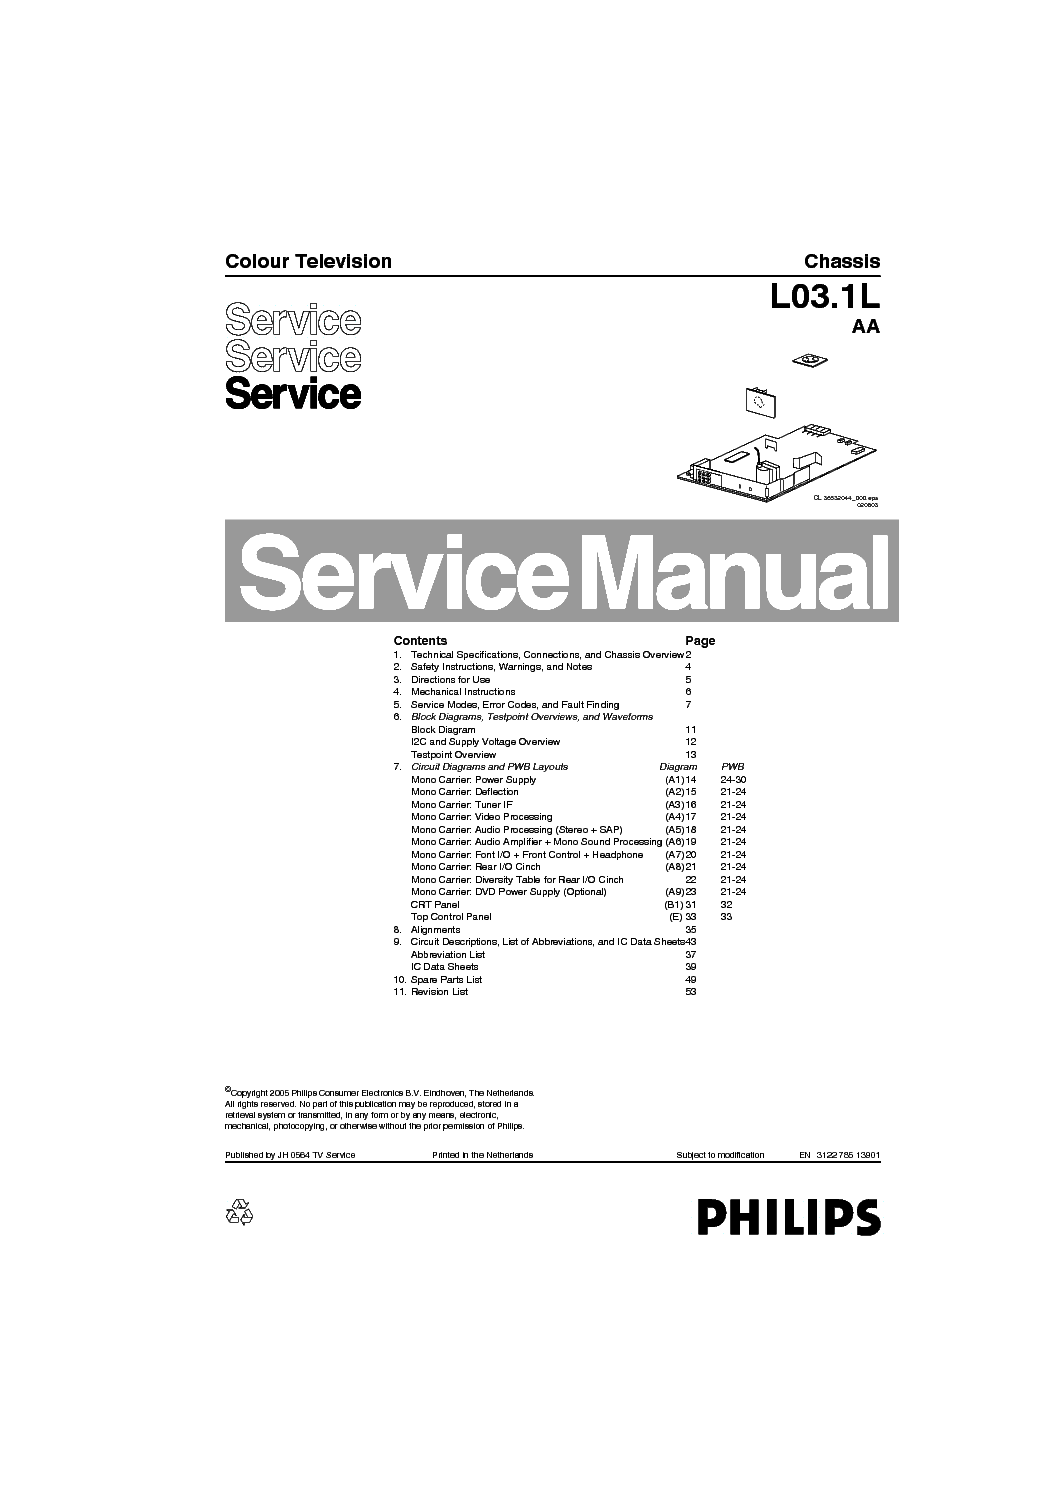 PHILIPS CHASSIS Q551.1E LA Service Manual free download